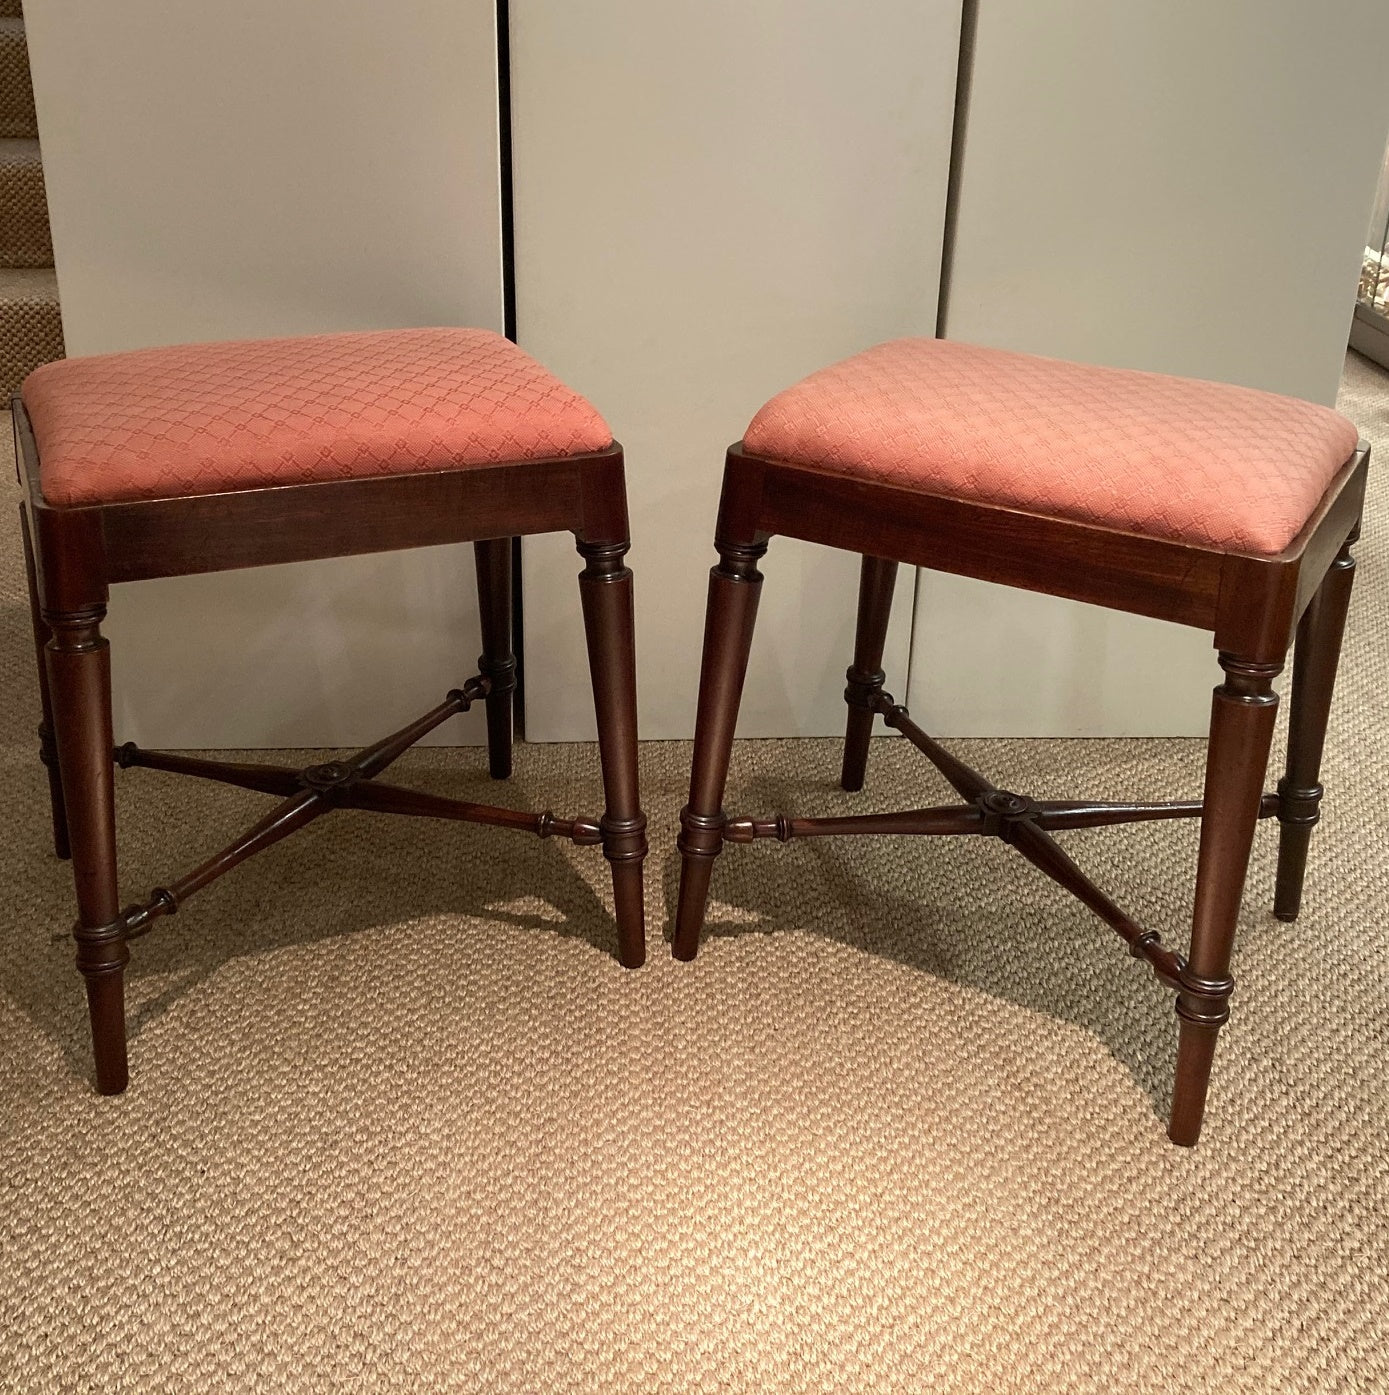 Pair of Gillows Stools